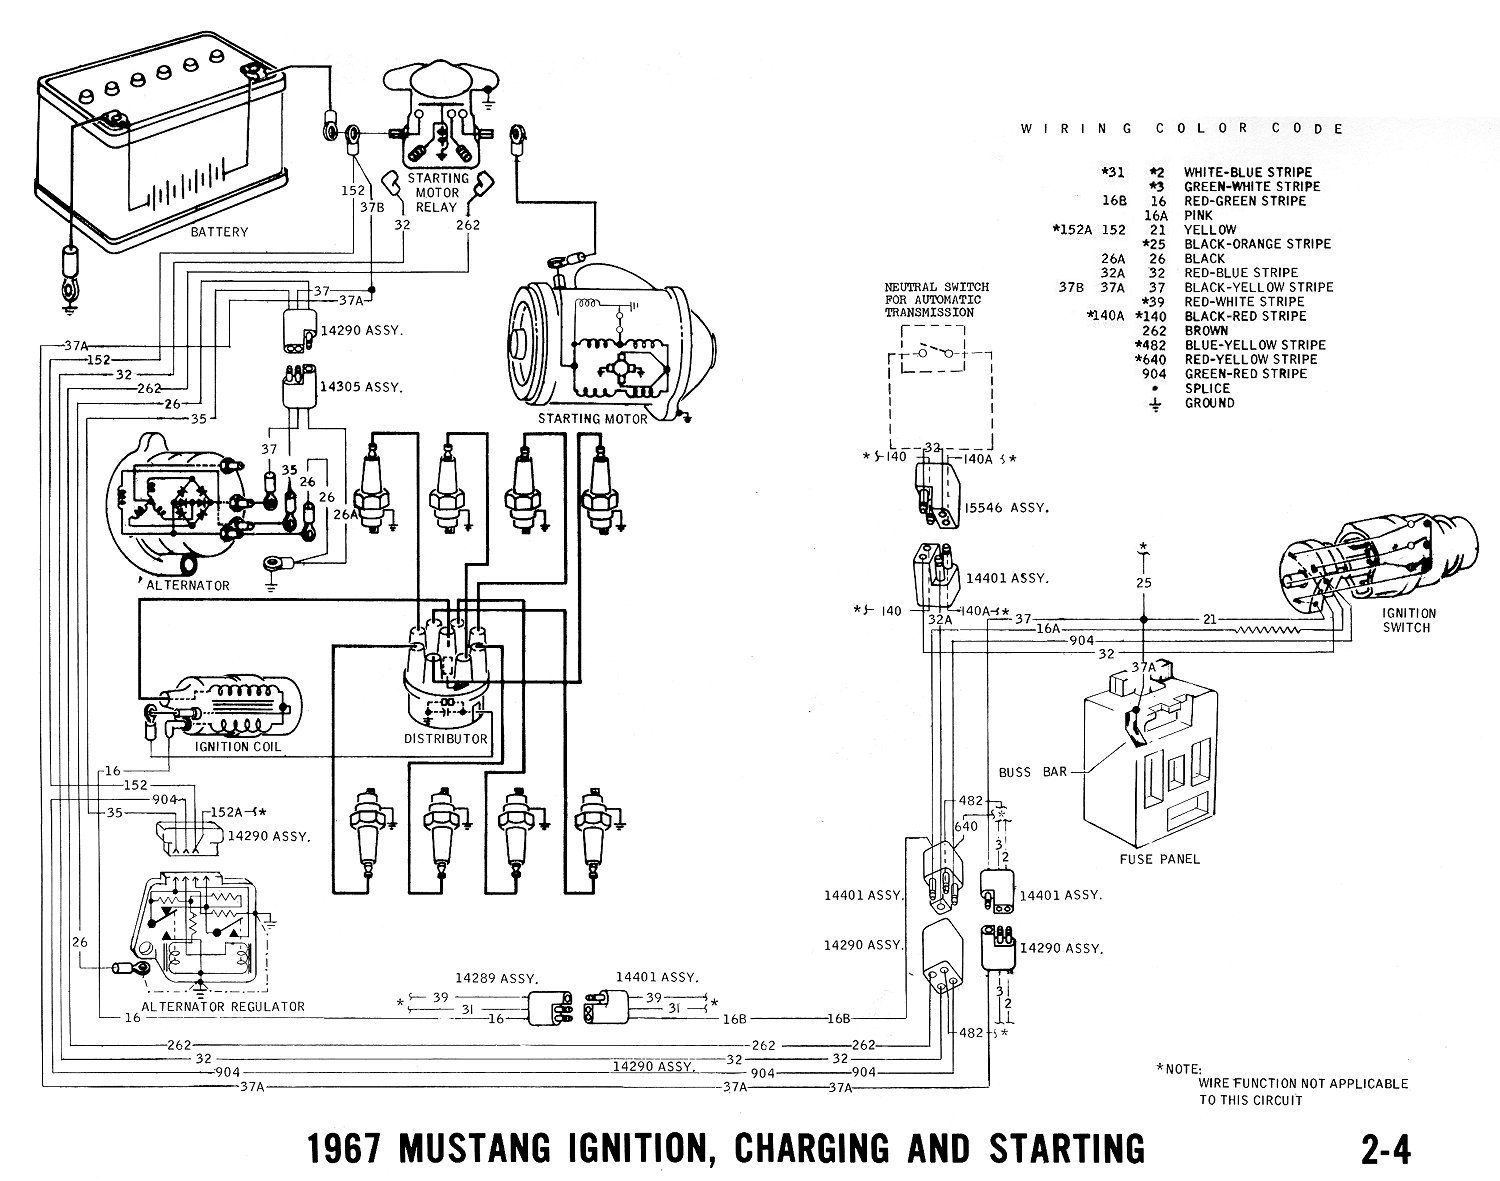 hight resolution of mustang alternator wiring diagram wiring diagram source 67 mustang alternator wiring diagram 1983 ford mustang alternator wiring diagram free picture